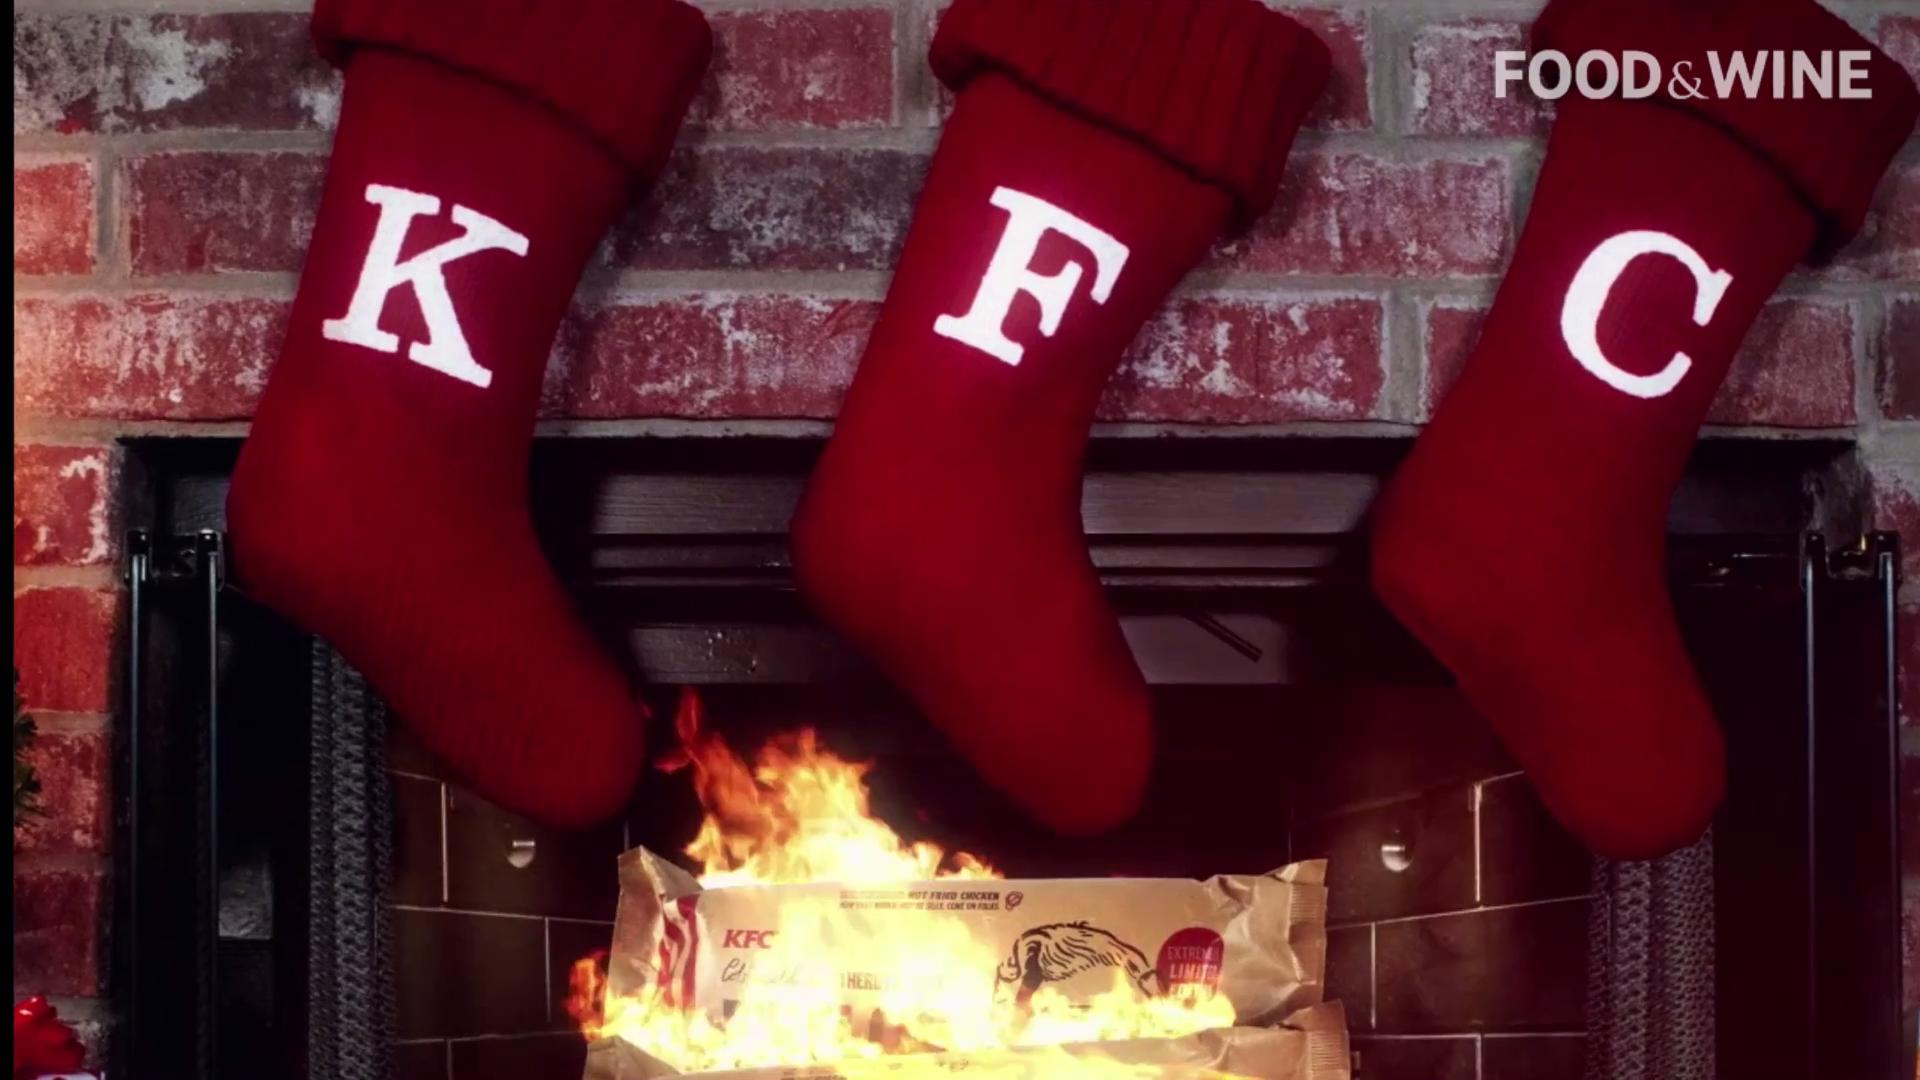 National News - KFC Is Selling Fried Chicken Firelogs Because Of Course They Are